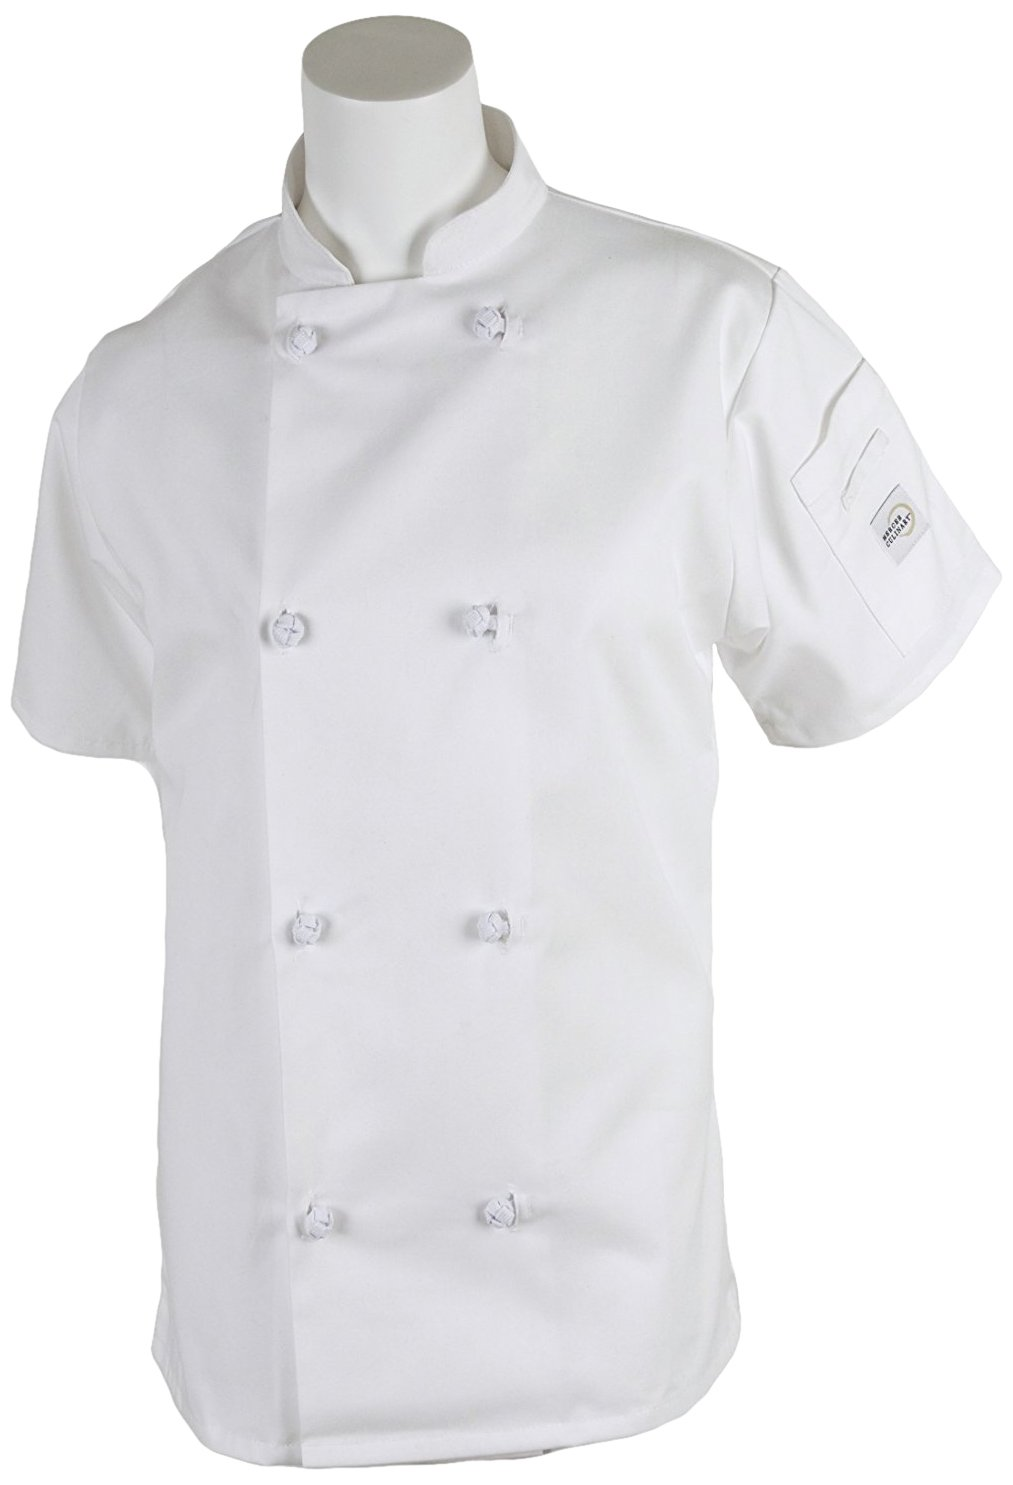 Mercer Culinary M60024WHL Millennia Women's Short Sleeve Cook Jacket with Cloth Knot Buttons, Large, White